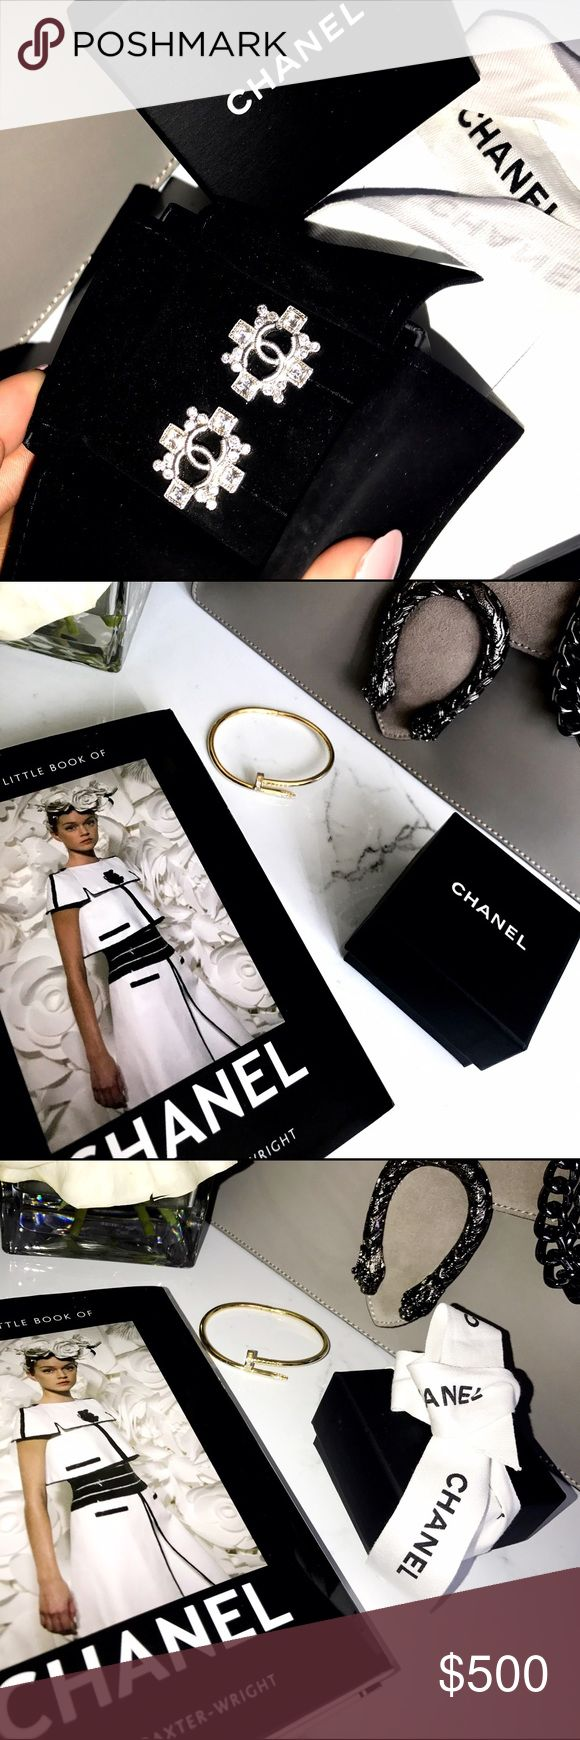 Chanel Earrings/Studs ( Authentic ) Never Worn, Chanel CC Diamond Earrings/Studs CHANEL Jewelry Earrings